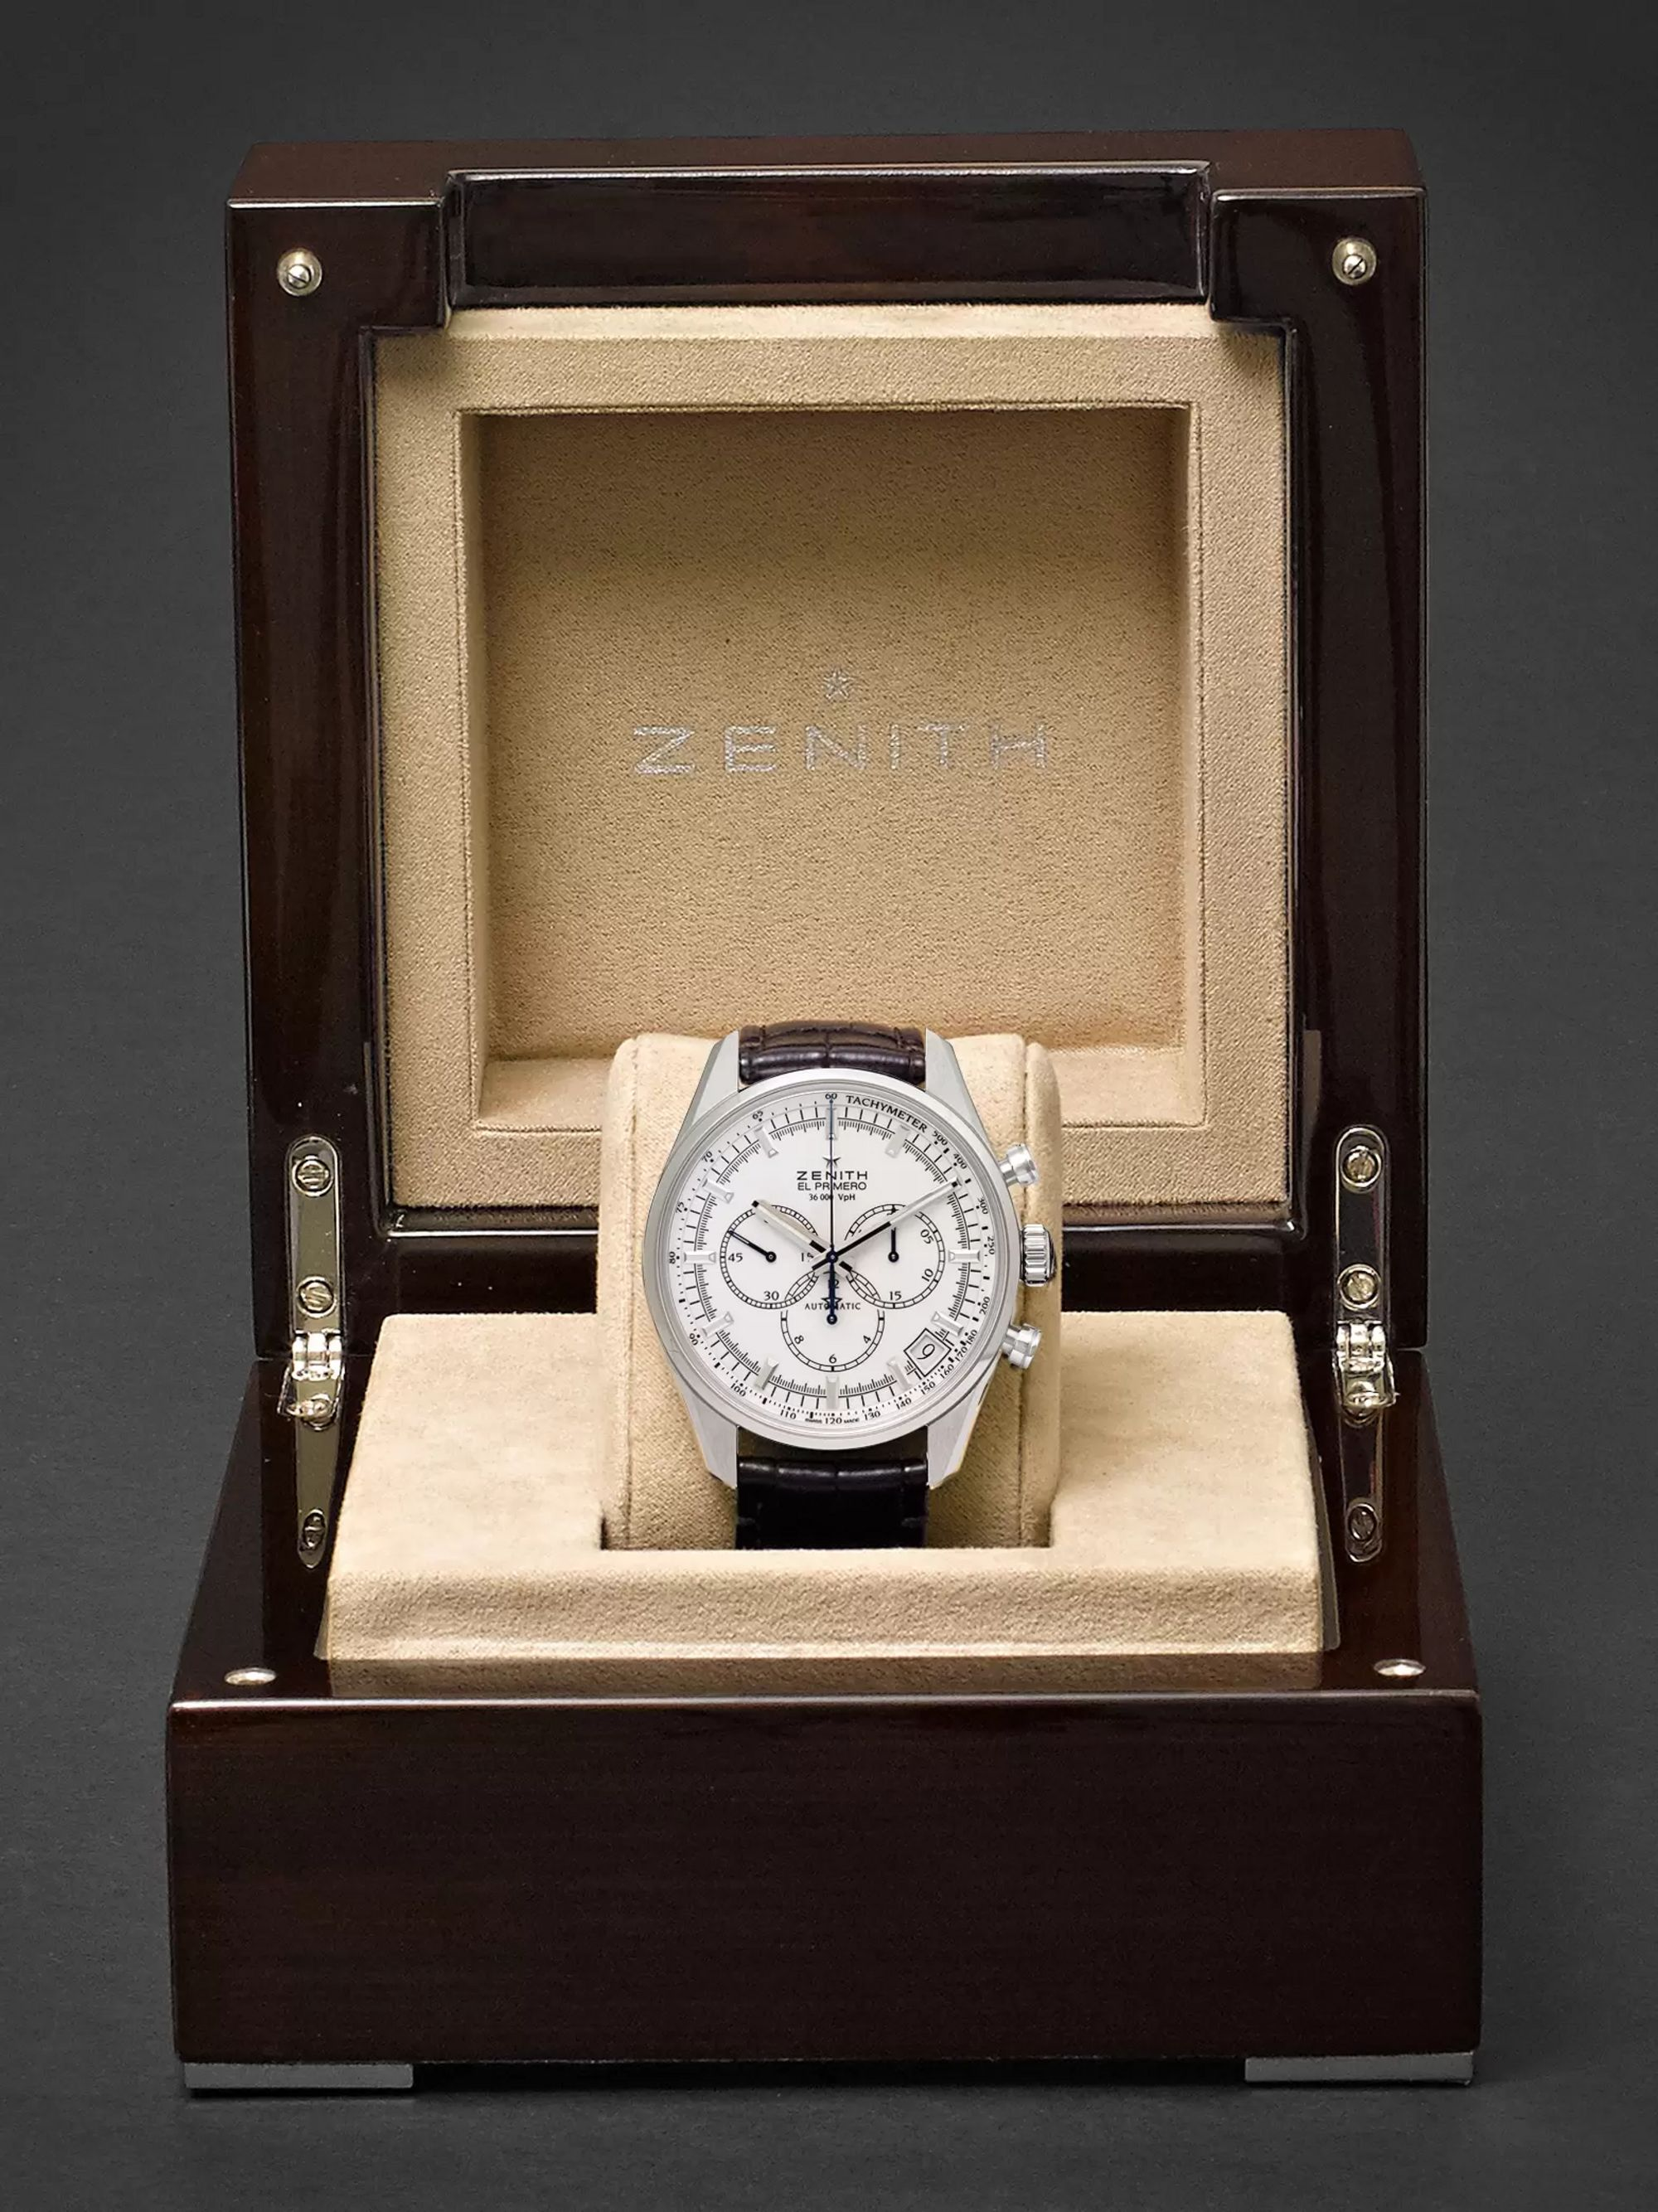 Zenith El Primero 42mm Stainless Steel and Alligator Watch, Ref. No. 03.2080.400/01.C494